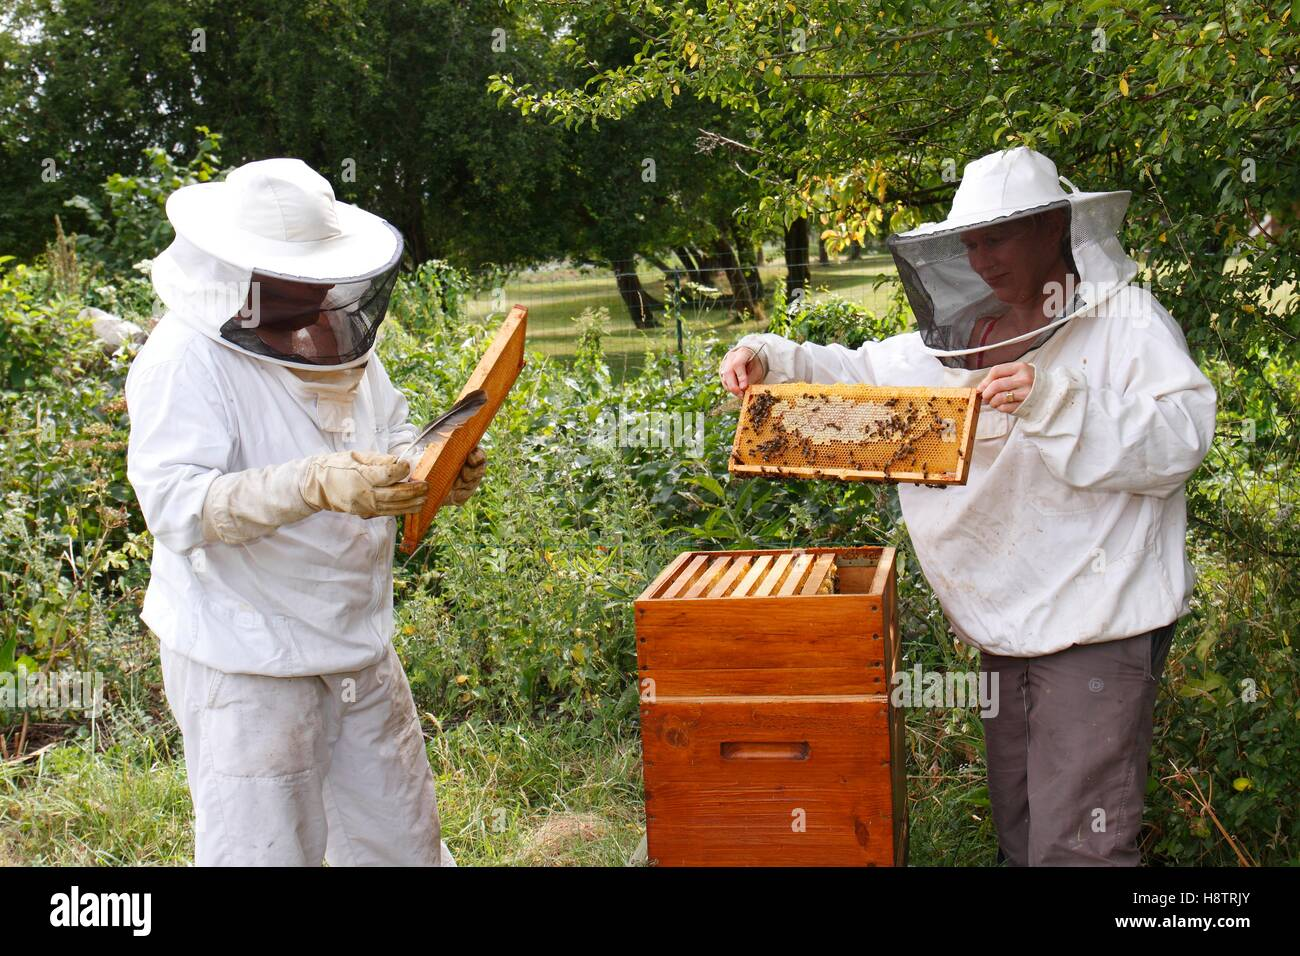 Manipulation and observation of a bee brood frame by beekeepers Heurteauville, Normandy, France - Stock Image